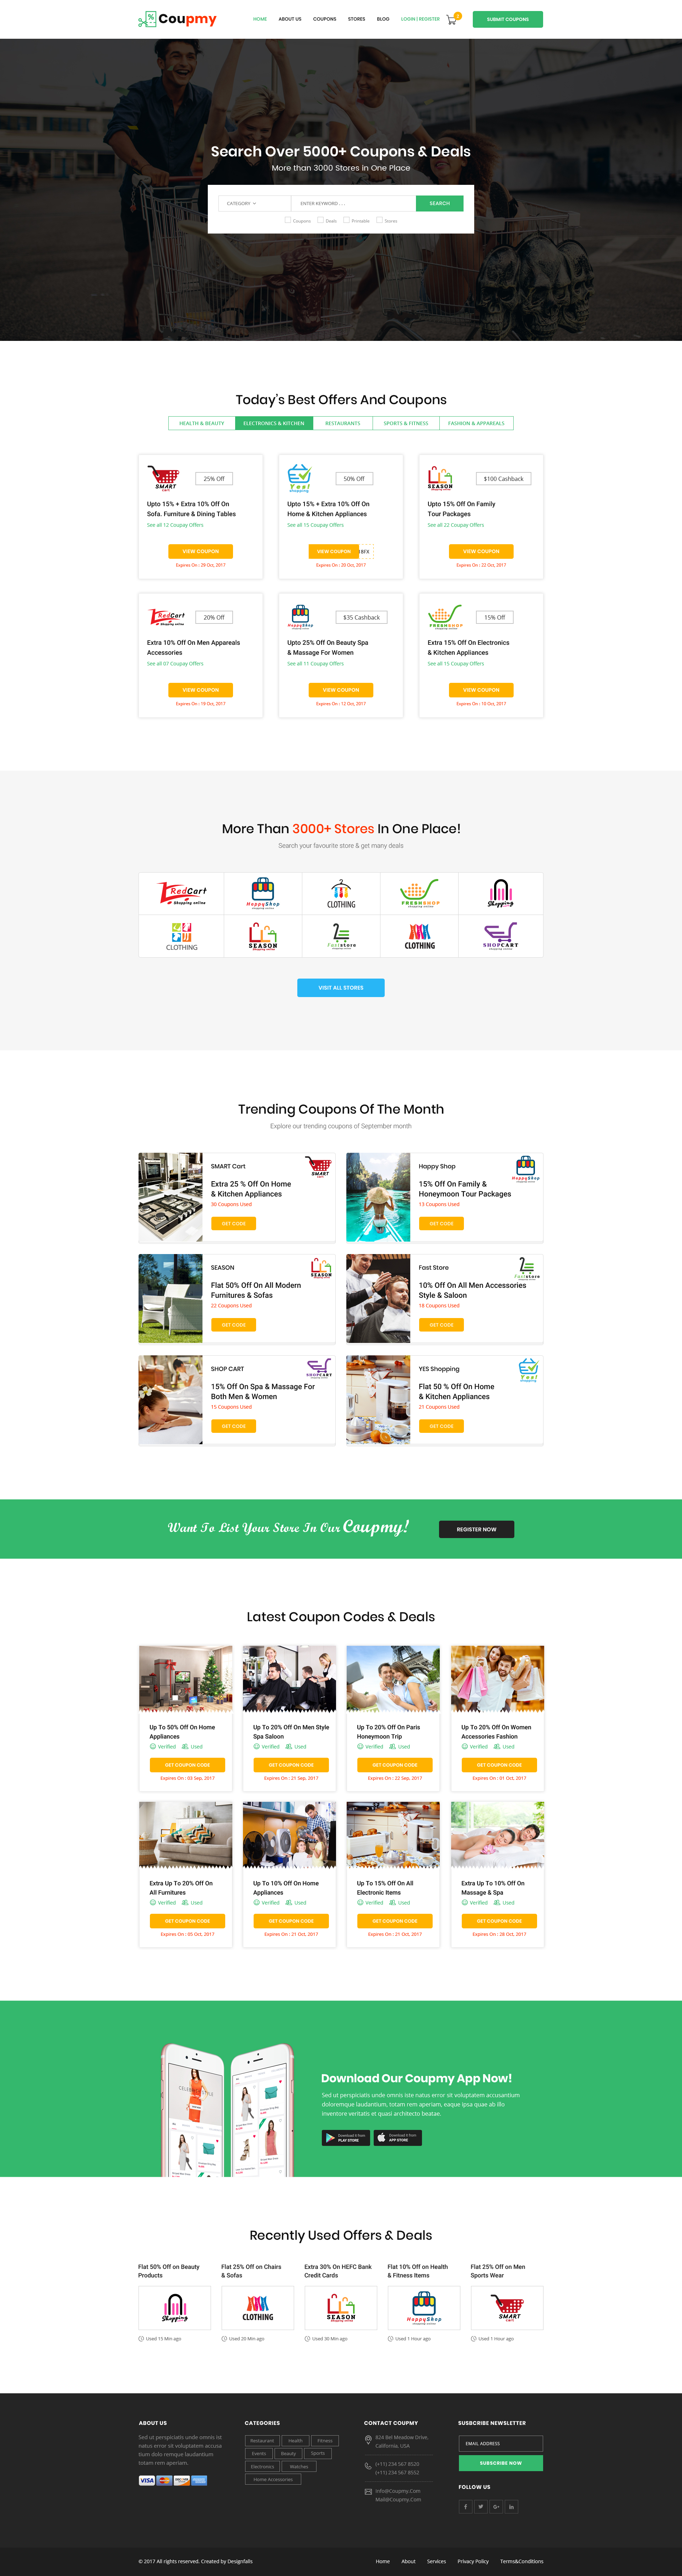 Coupmy-Coupons, Affiliates, Offers, Deals, Discounts & Marketplace ...